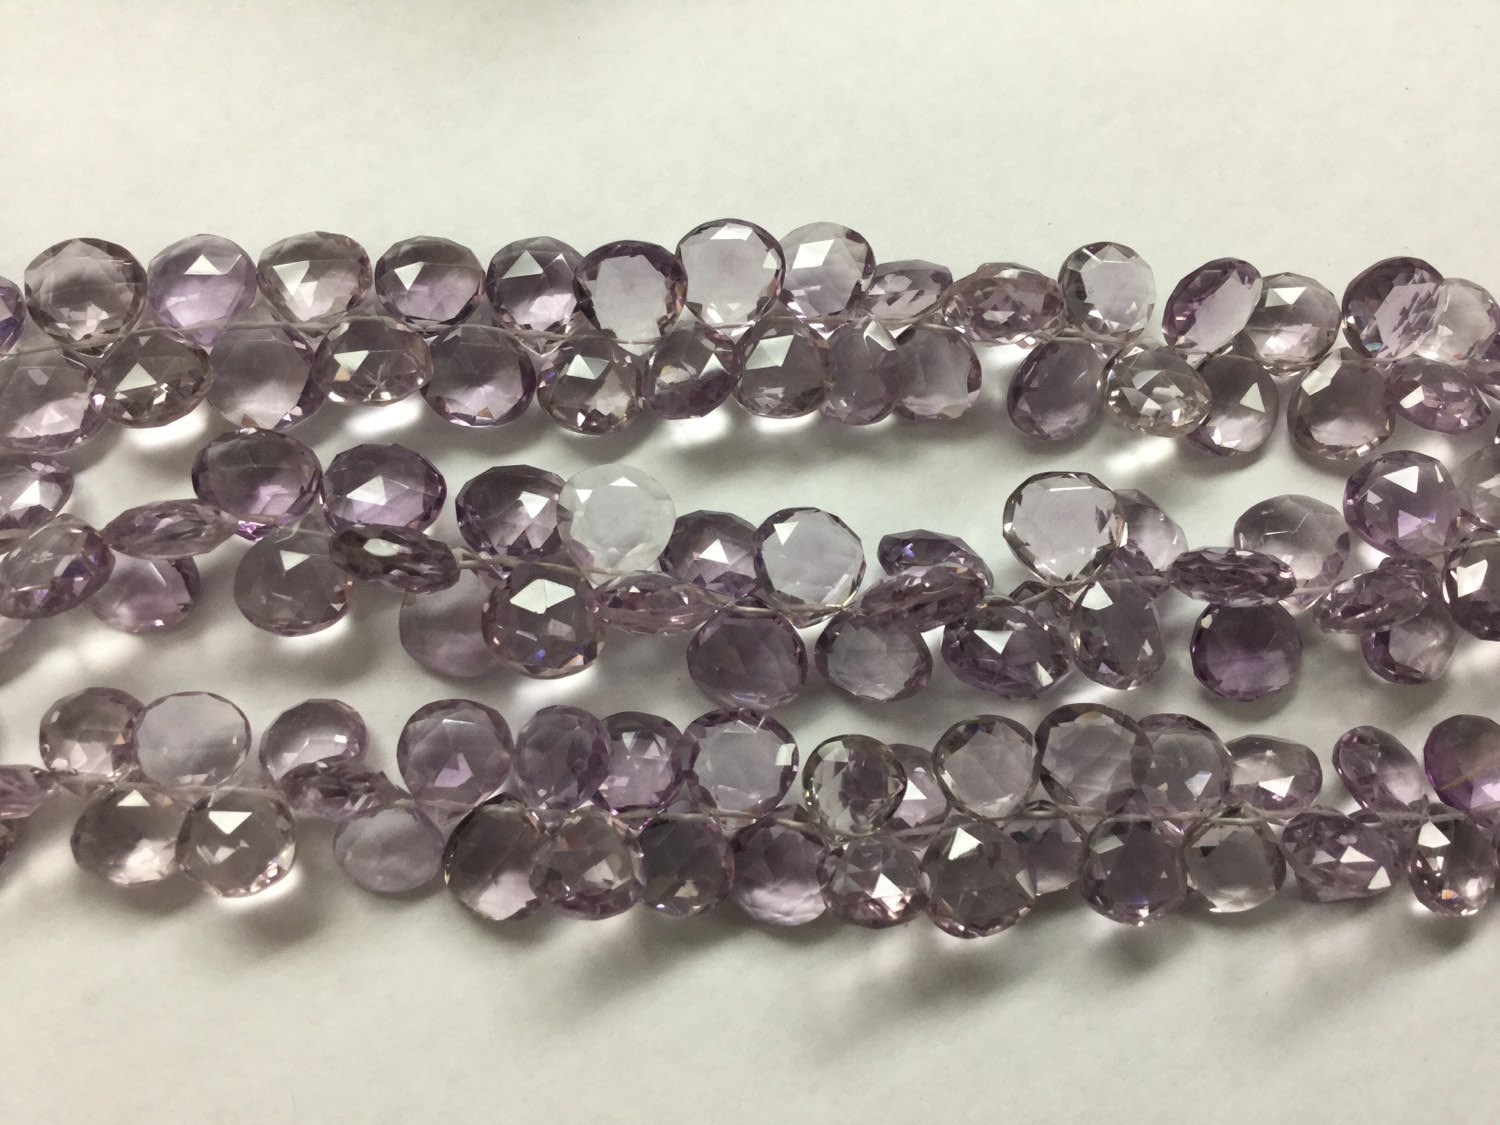 Pink Amethyst Hydro Quartz Hearts Faceted